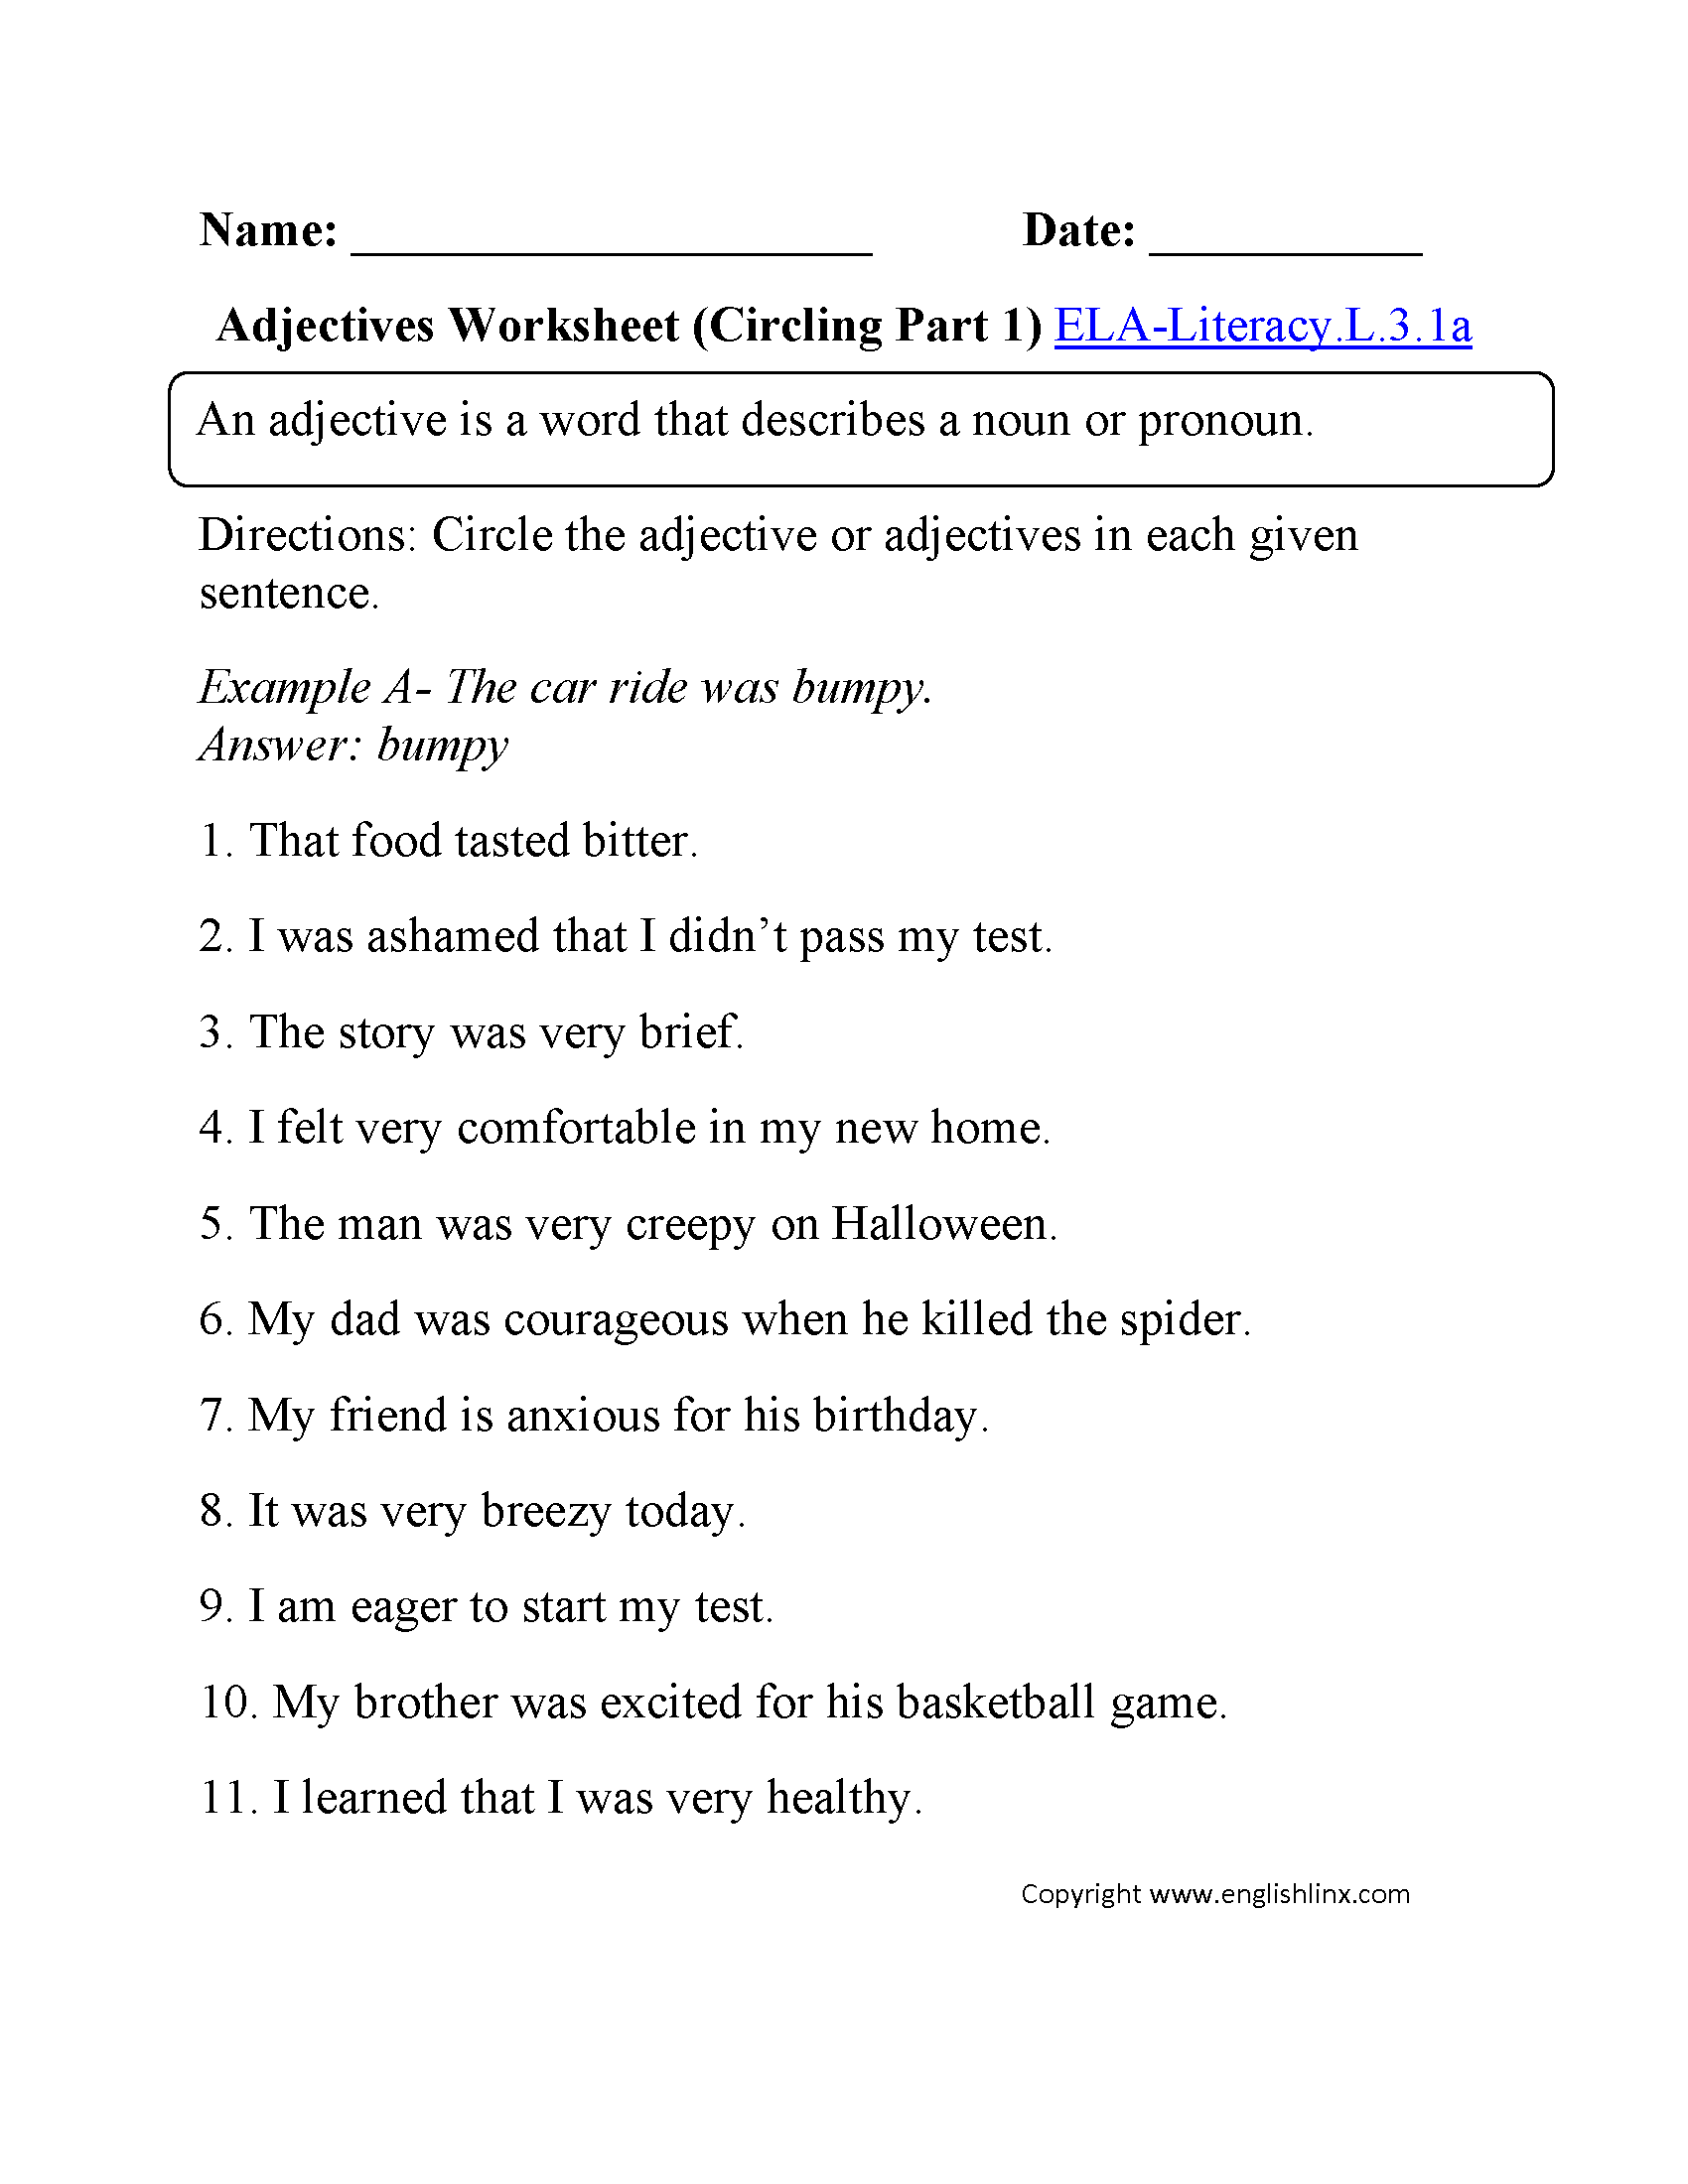 hight resolution of Adjectives Worksheet 1 ELA-Literacy.L.3.1a Language Worksheet   Free  grammar worksheet